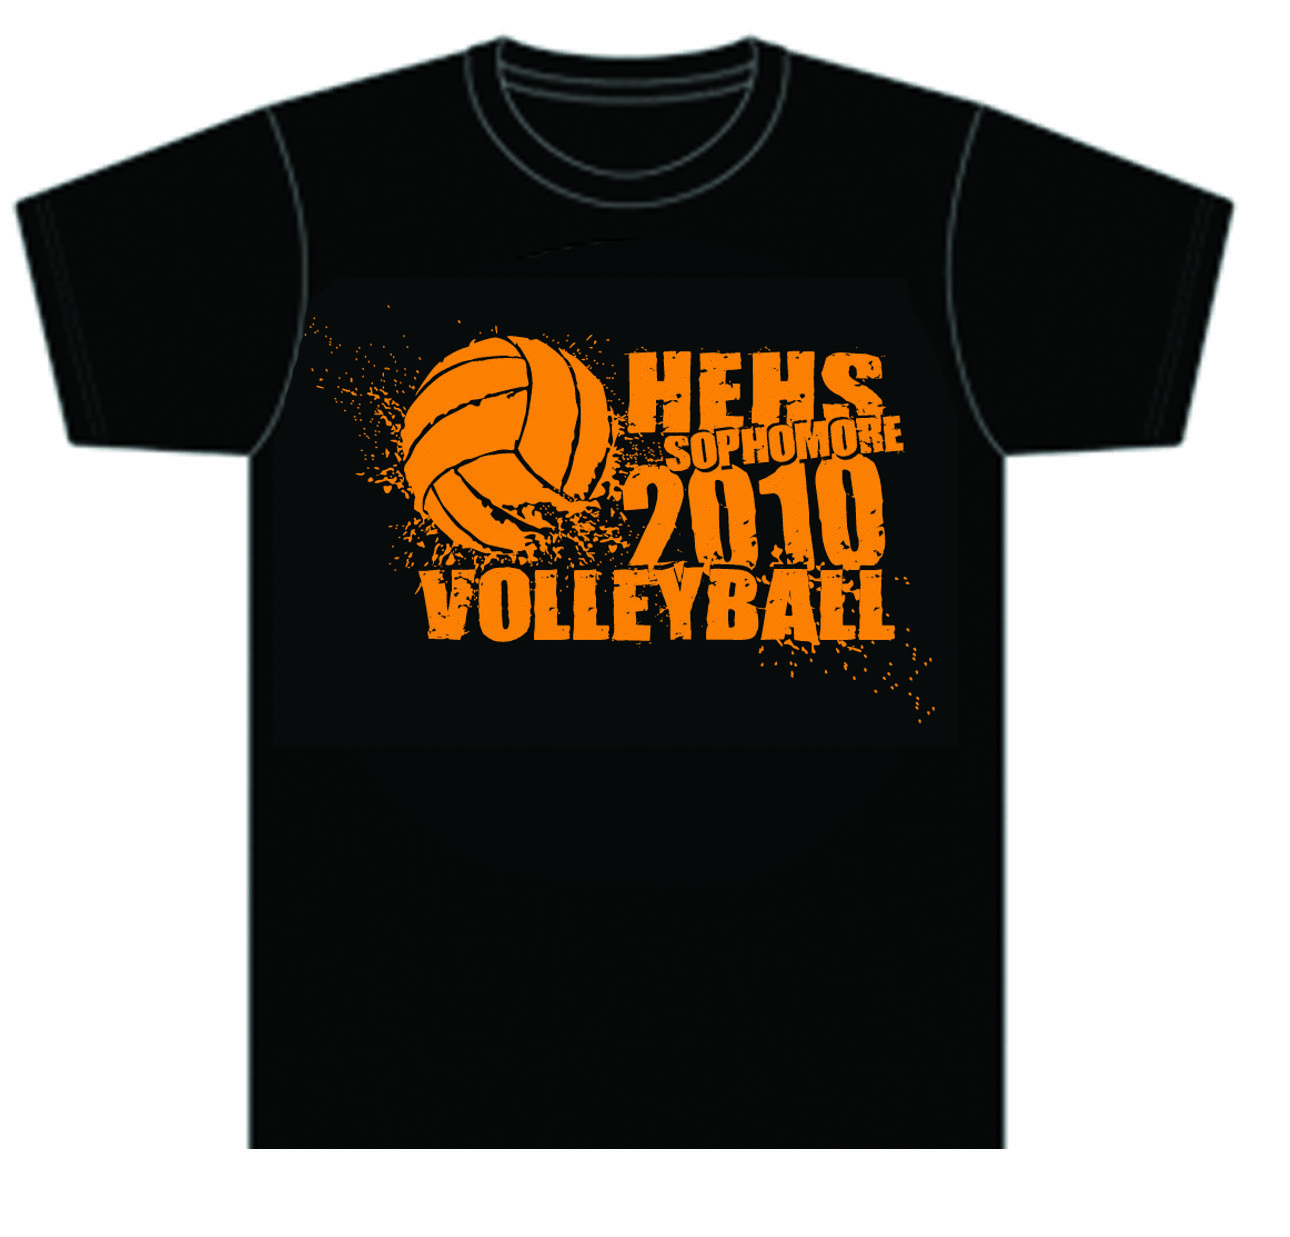 Volleyball T Shirt Design Ideas prep volleyball champions t shirt design Volleyball Team Shirt Designs High School Volleyball T Shirt